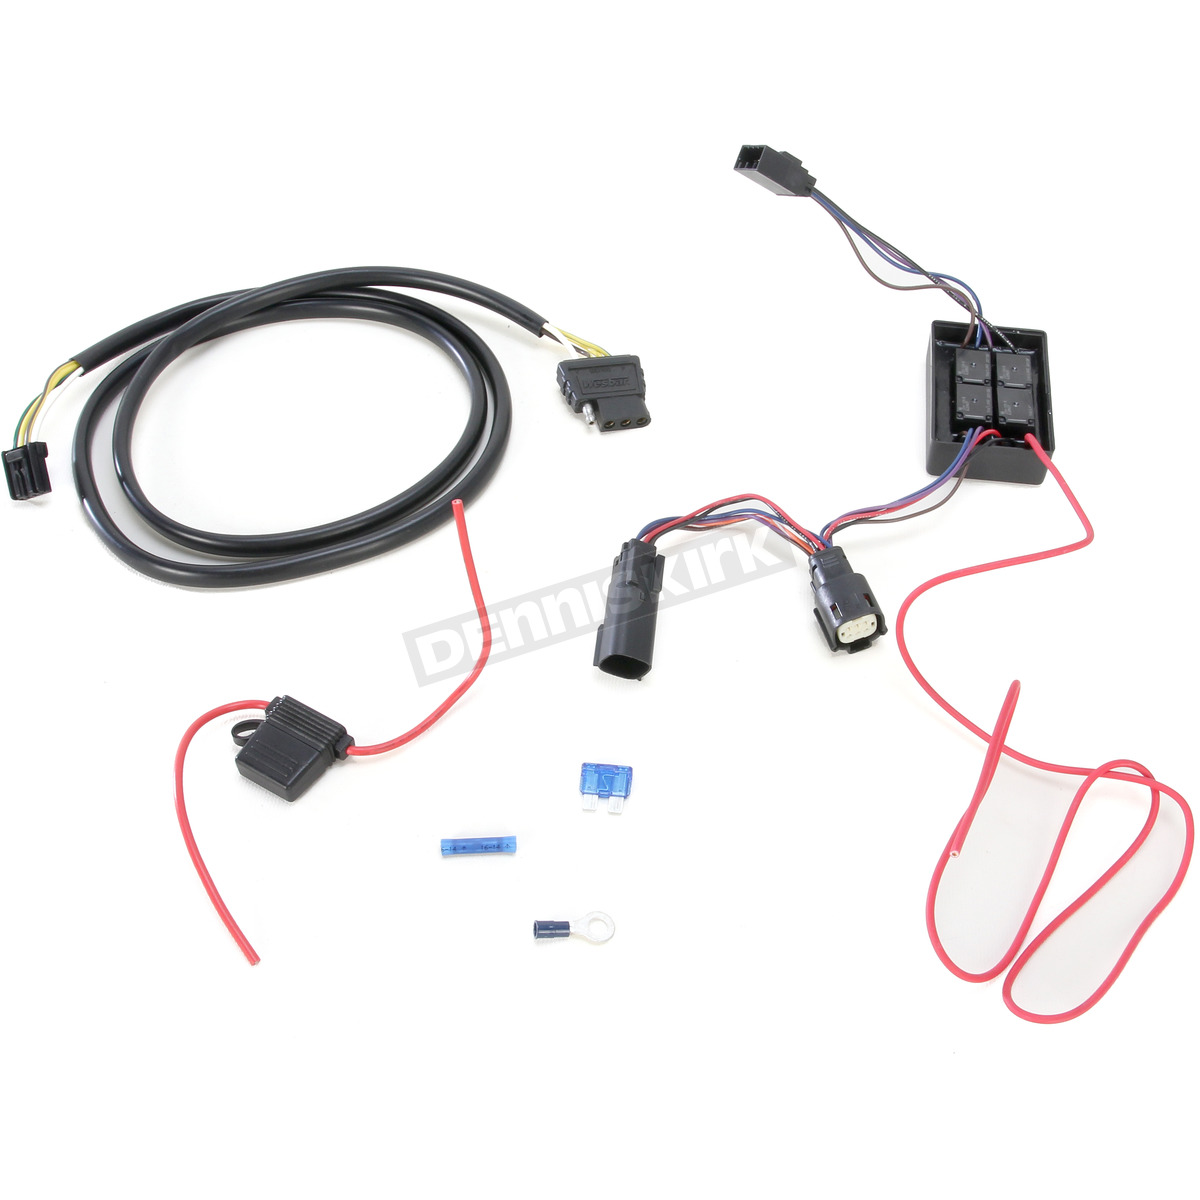 hight resolution of  plug and play trailer wiring connector kit w 4 wire harness and isolator